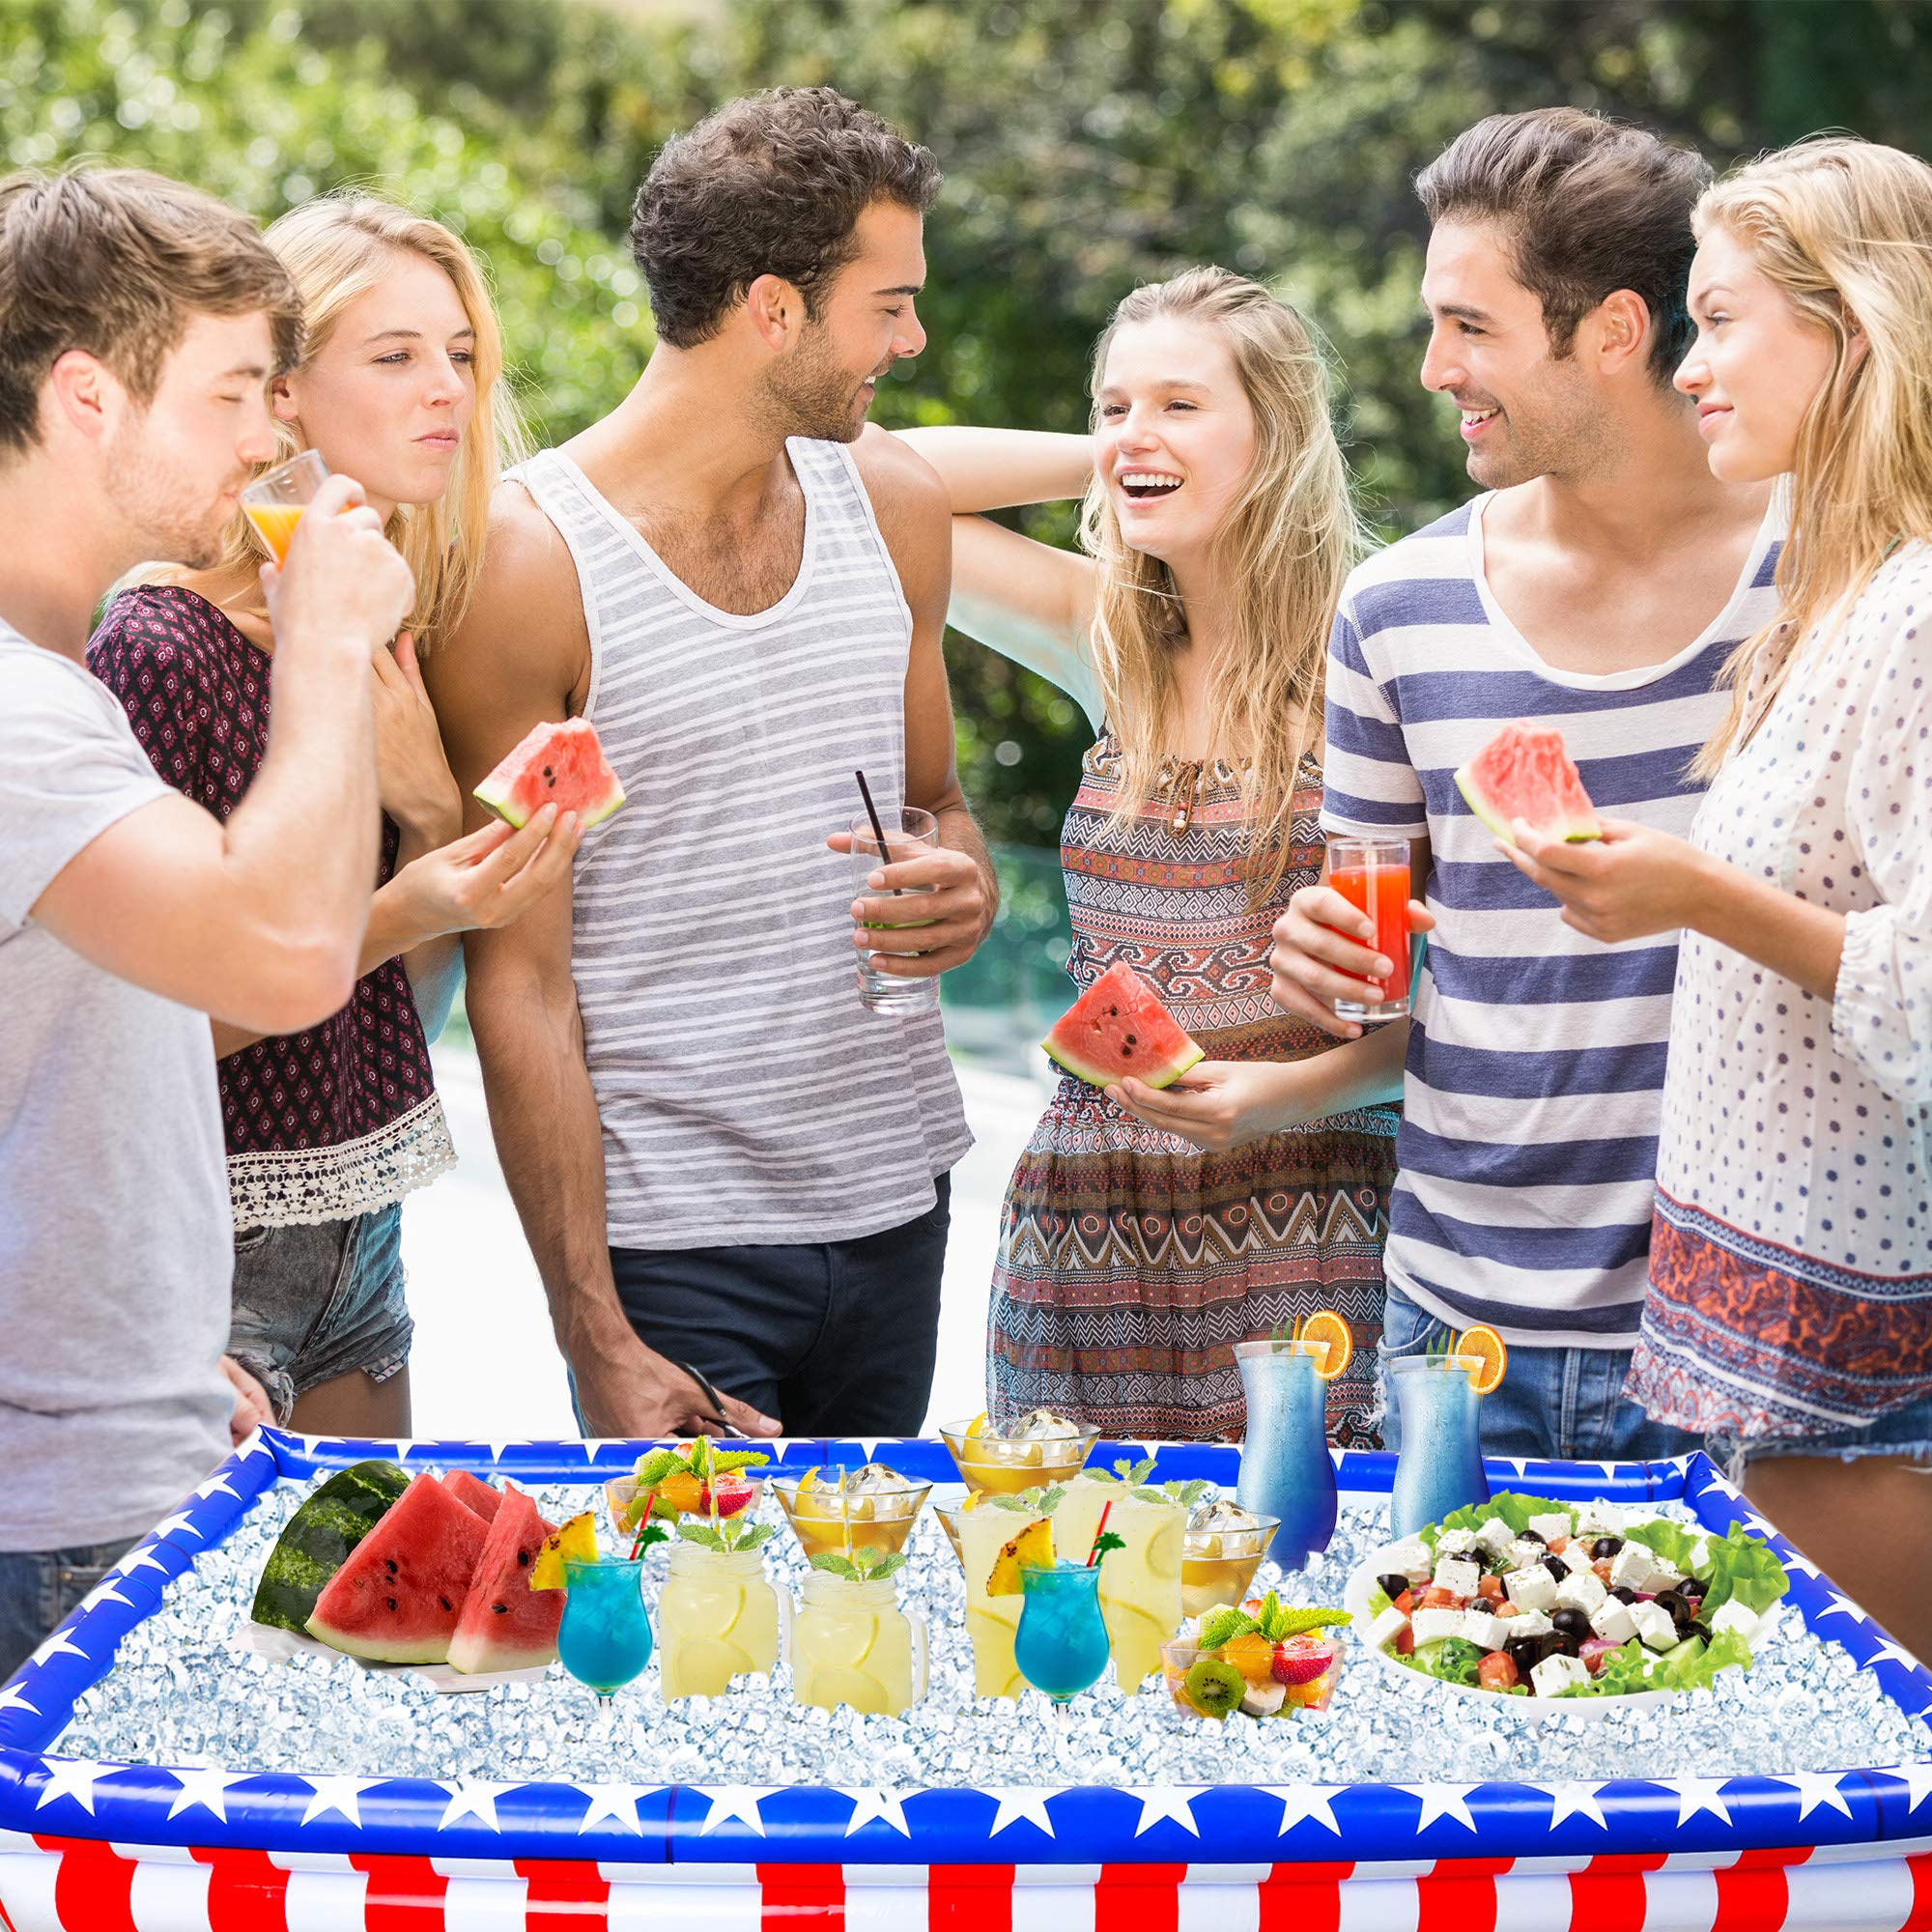 Outdoor Inflatable Buffet Cooler Server - Patriotic Red White and Blue Blow Up Cooling Tub for Serving Buffet Style Picnic - Pack of 2 by Big Mo's Toys (Image #3)